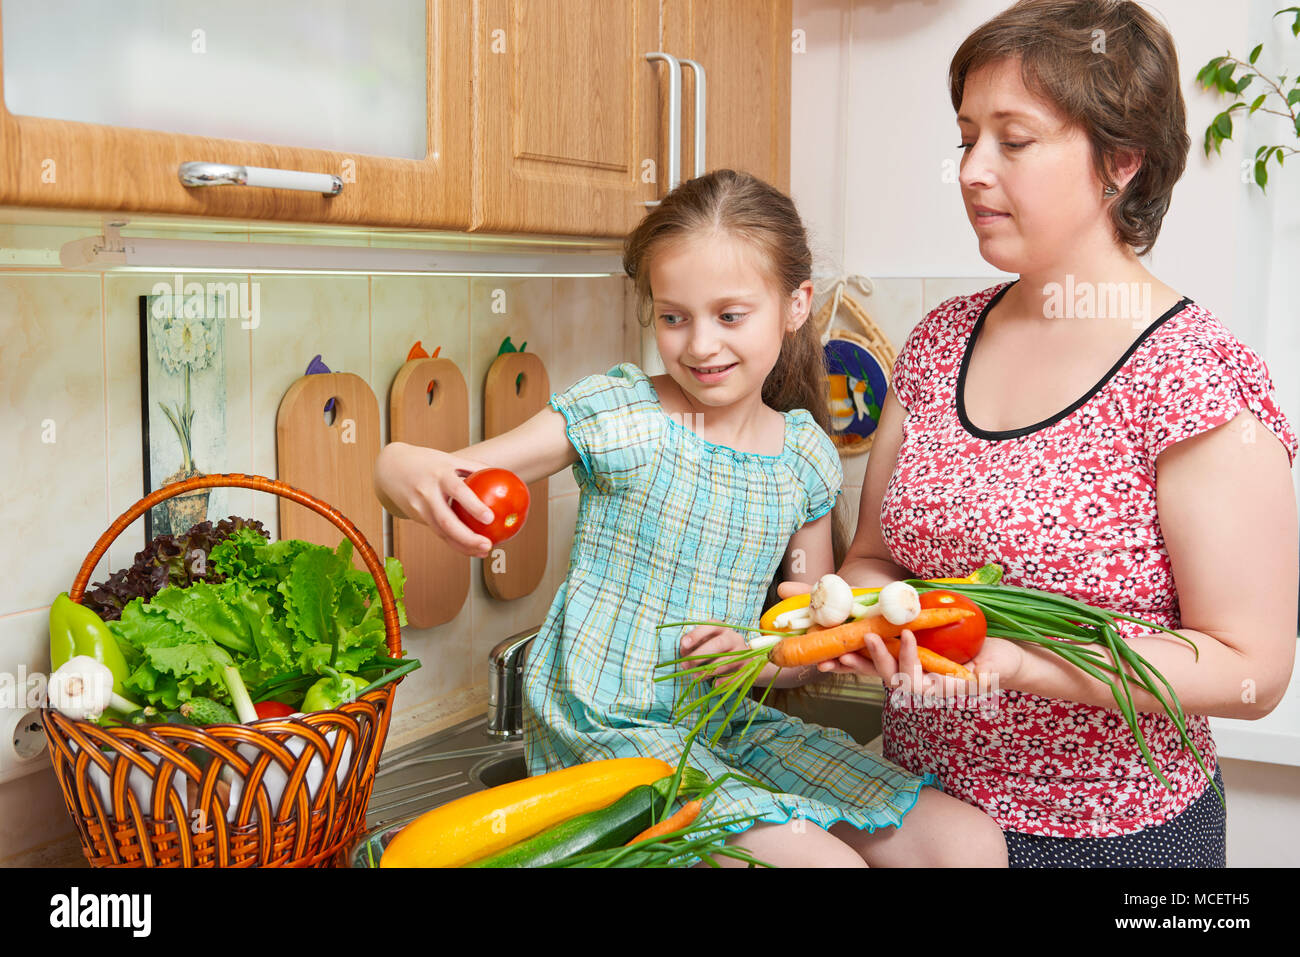 Mother and daughter cooking. Basket of vegetables and fresh fruits